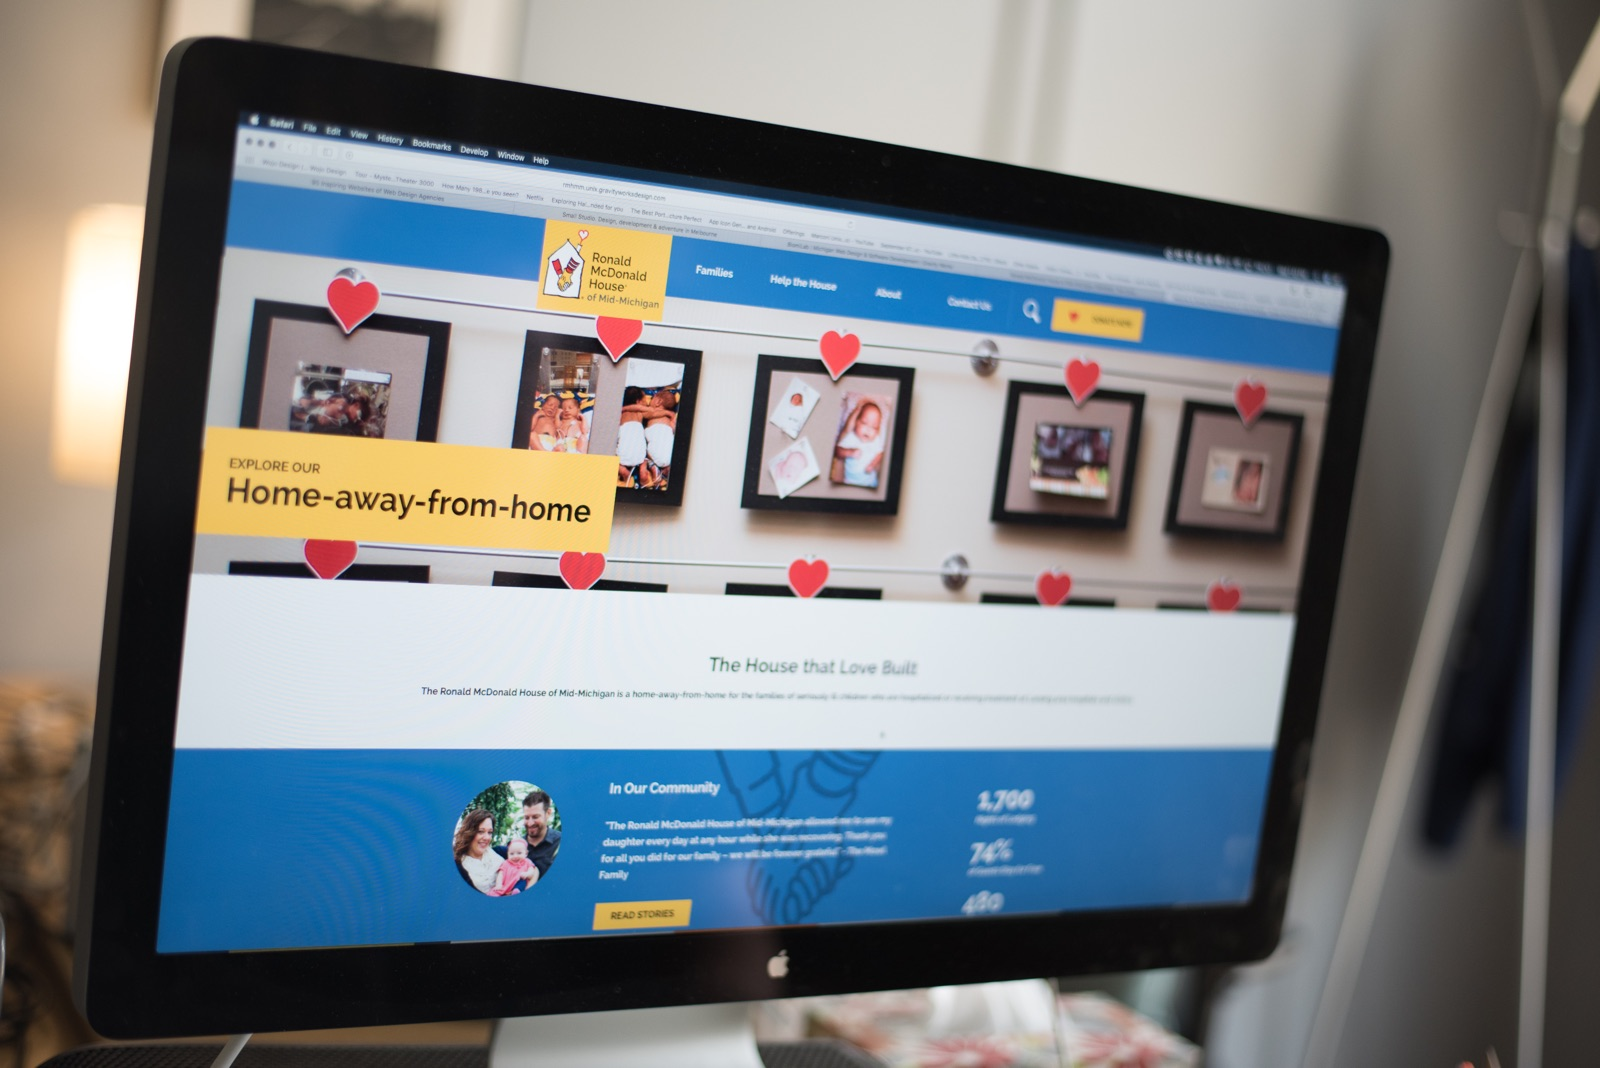 The Ronald McDonald House of Mid-Michigan website on a desktop